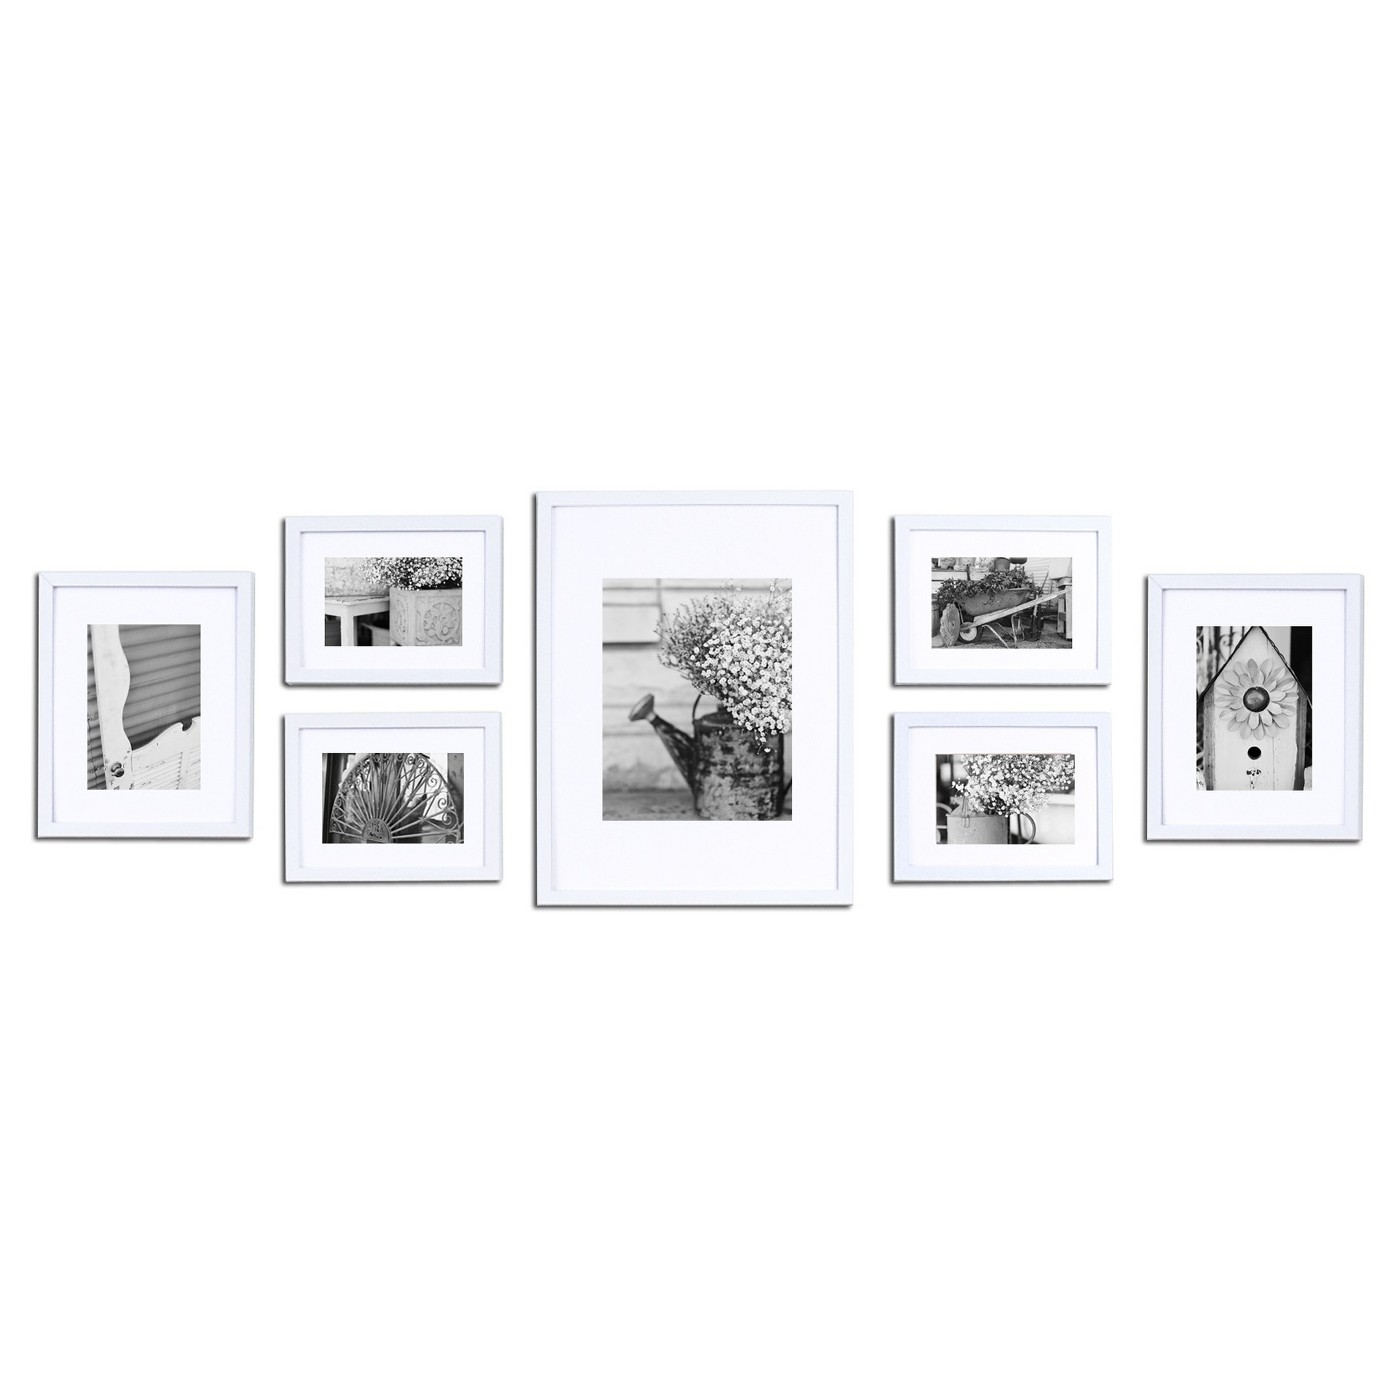 Gallery Solutions 7 Piece Wall Frame Set - image 1 of 7